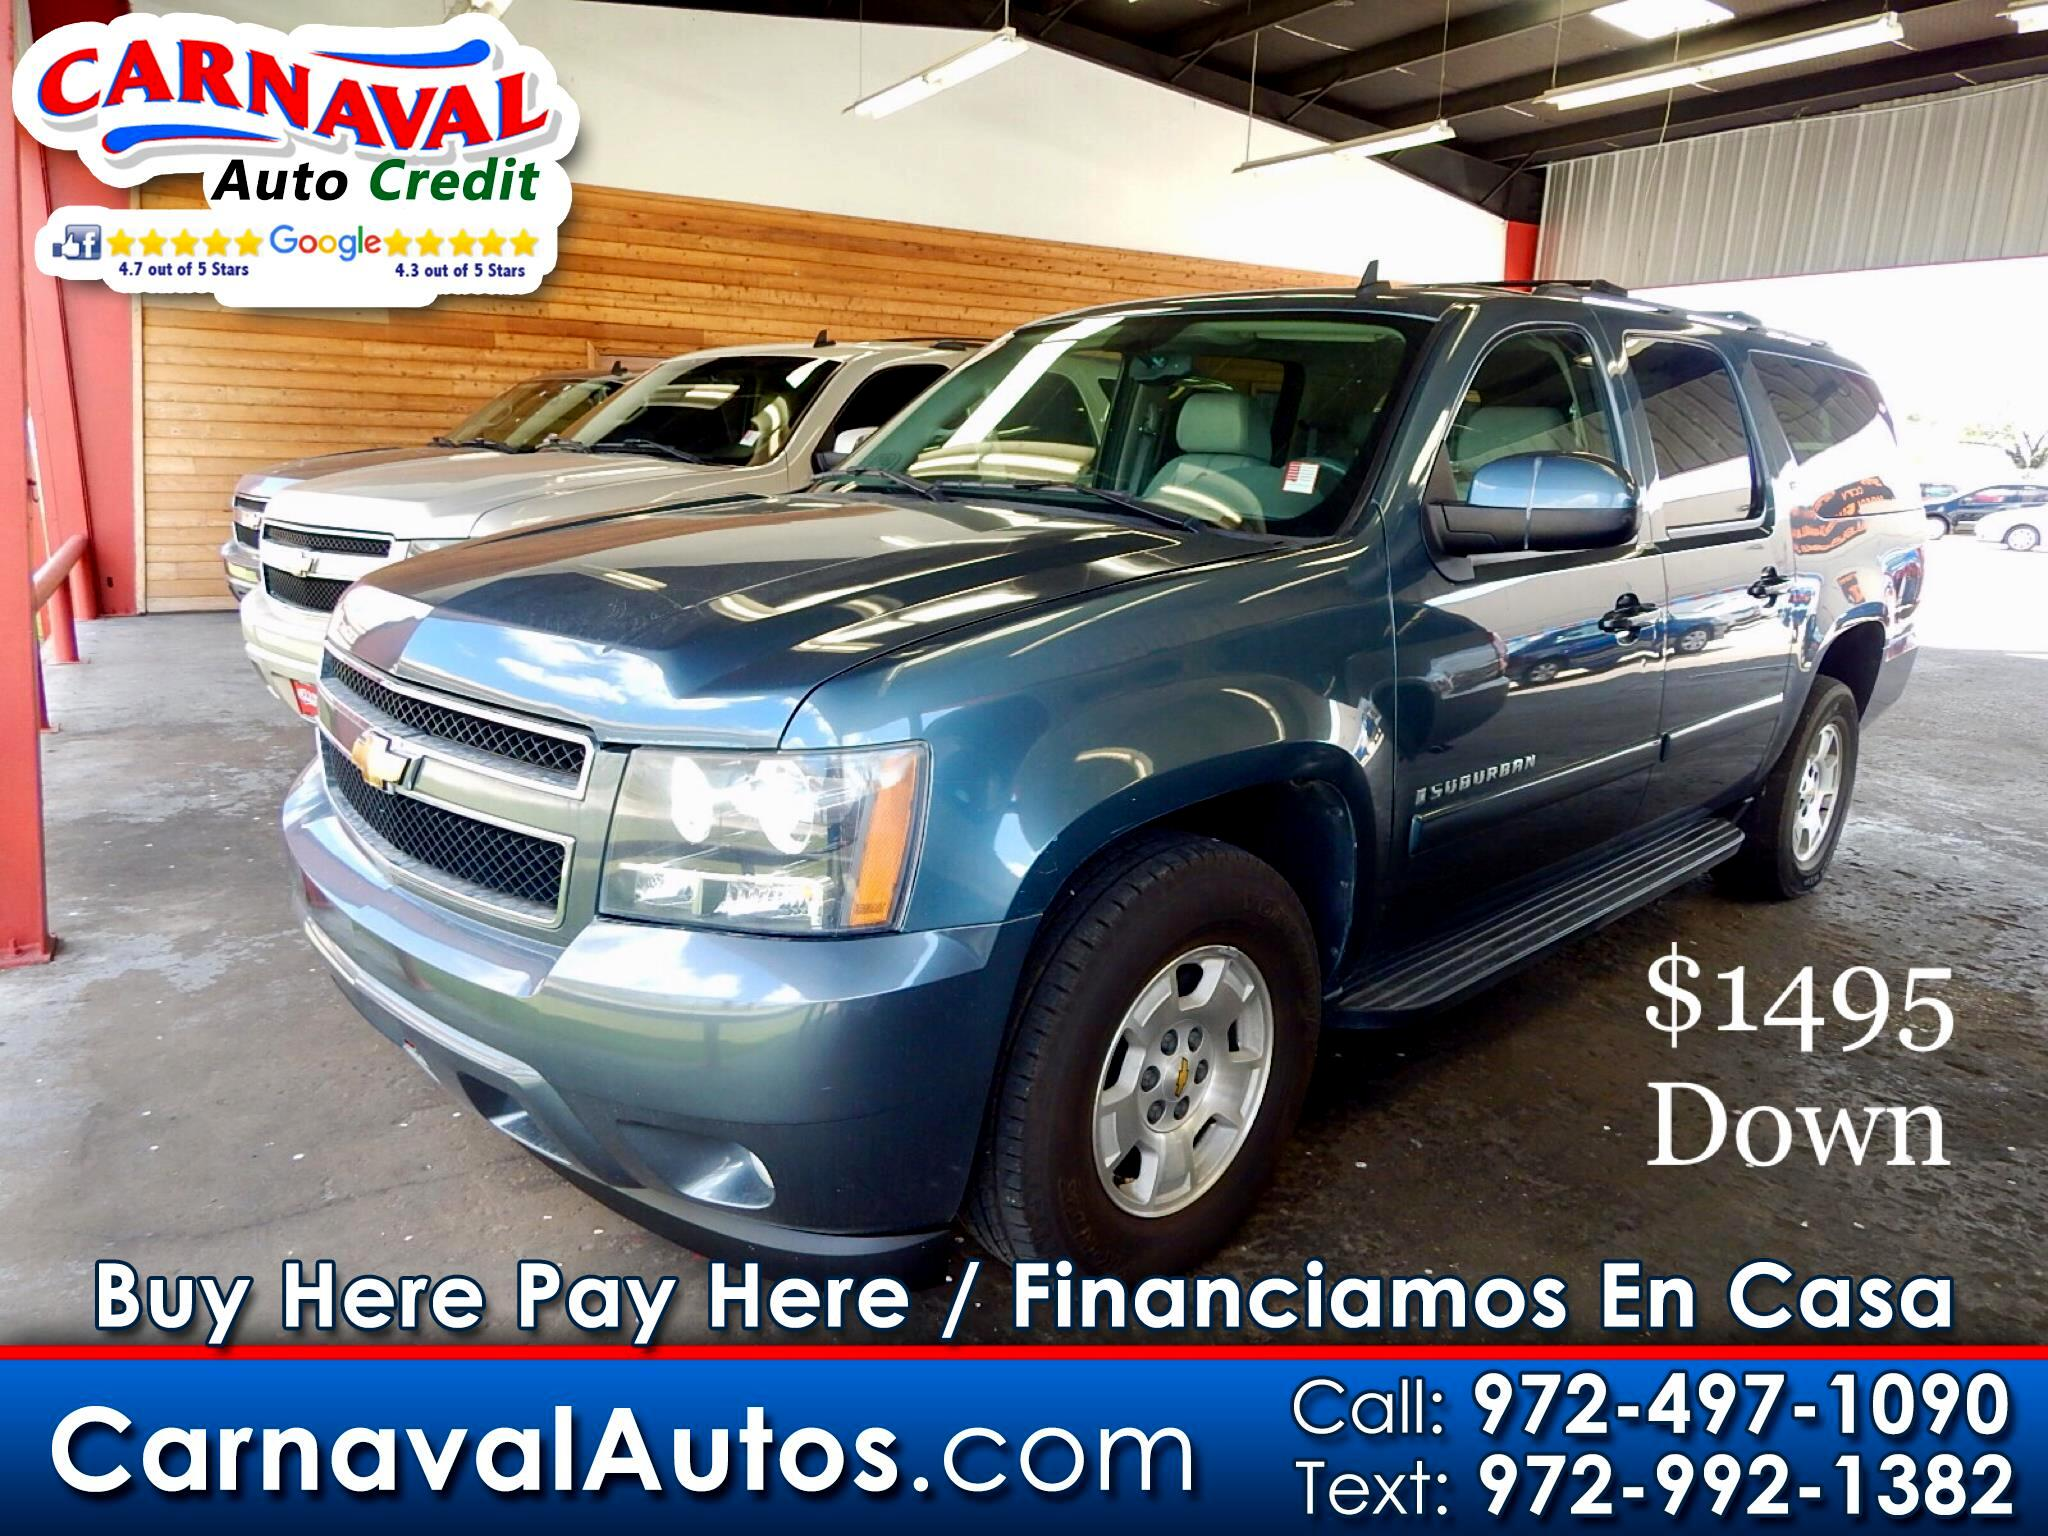 buy here pay here 2008 chevrolet suburban 1500 lt for sale in dallas tx 75229 carnaval auto credit. Black Bedroom Furniture Sets. Home Design Ideas